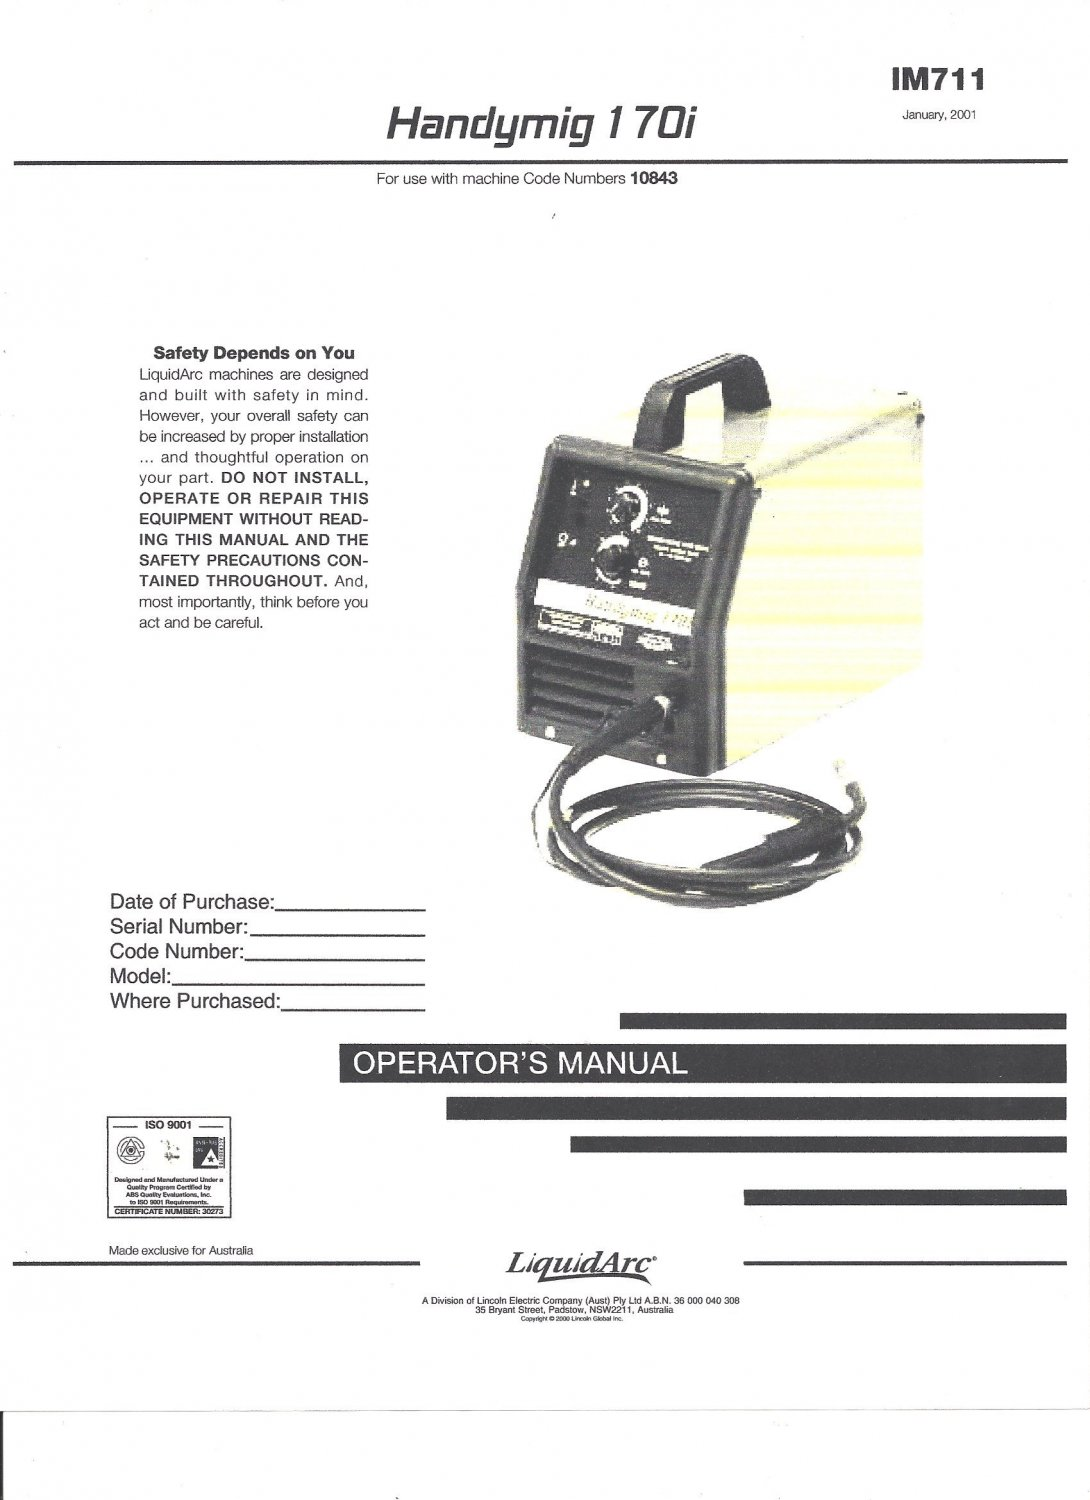 Lincoln Electric HANDYMIG 170i Operators Manual ( Copy)